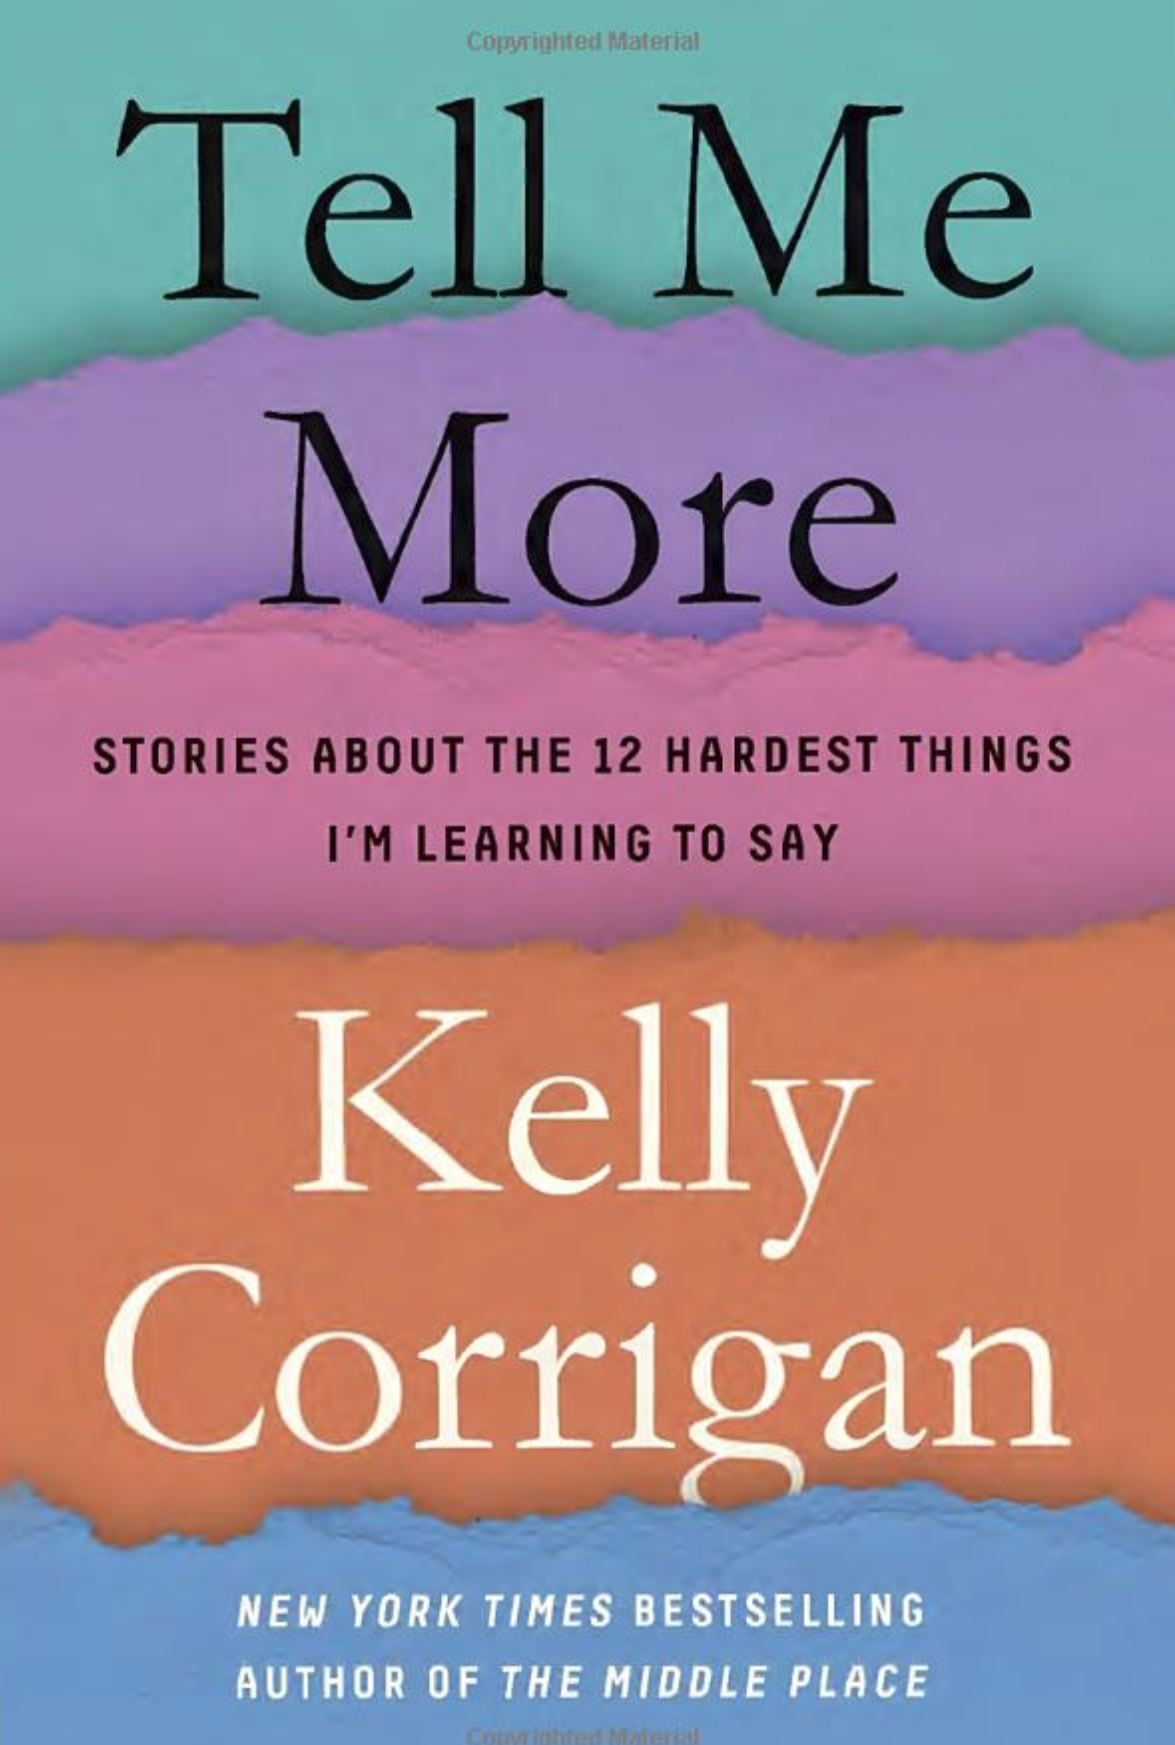 "Tell Me More by Kelly Corrigan - Lilly: I first loved Kelly because she is one of my people, a modern feminist mother and writer raised in an Irish American Catholic family. ""We"" (Irish American Catholic families) are so incredibly loud but surprisingly insightful, effusive to the point that we often scare strangers or newcomers to the family (my Mom still praises sweet, German Markus for being able to ""ride out"" getting to know us) but stoic at the same time. It's always so good to hear a voice of reason from the group.Tell Me More is Corrigan's collection of personal essays centered around the phrases that have changed her ability to relate and communicate as a mother, daughter, wife and friend. Her honesty with herself and us shows how the smallest things like changing an ""I'm Sorry"" to ""I Messed Up"" can grow and heal us and our relationships. Corrigan wrote the book while raising two teenage girls and losing her force of a father and a special best friend, all seasons of life that challenge us to go inside and relearn how to do things, especially when they happen all at once.I loved her reading of her own writing in the audio format. I both laughed and cried so hard in parts I had to make sure I could drive. It's now my favorite book to gift to a friend."